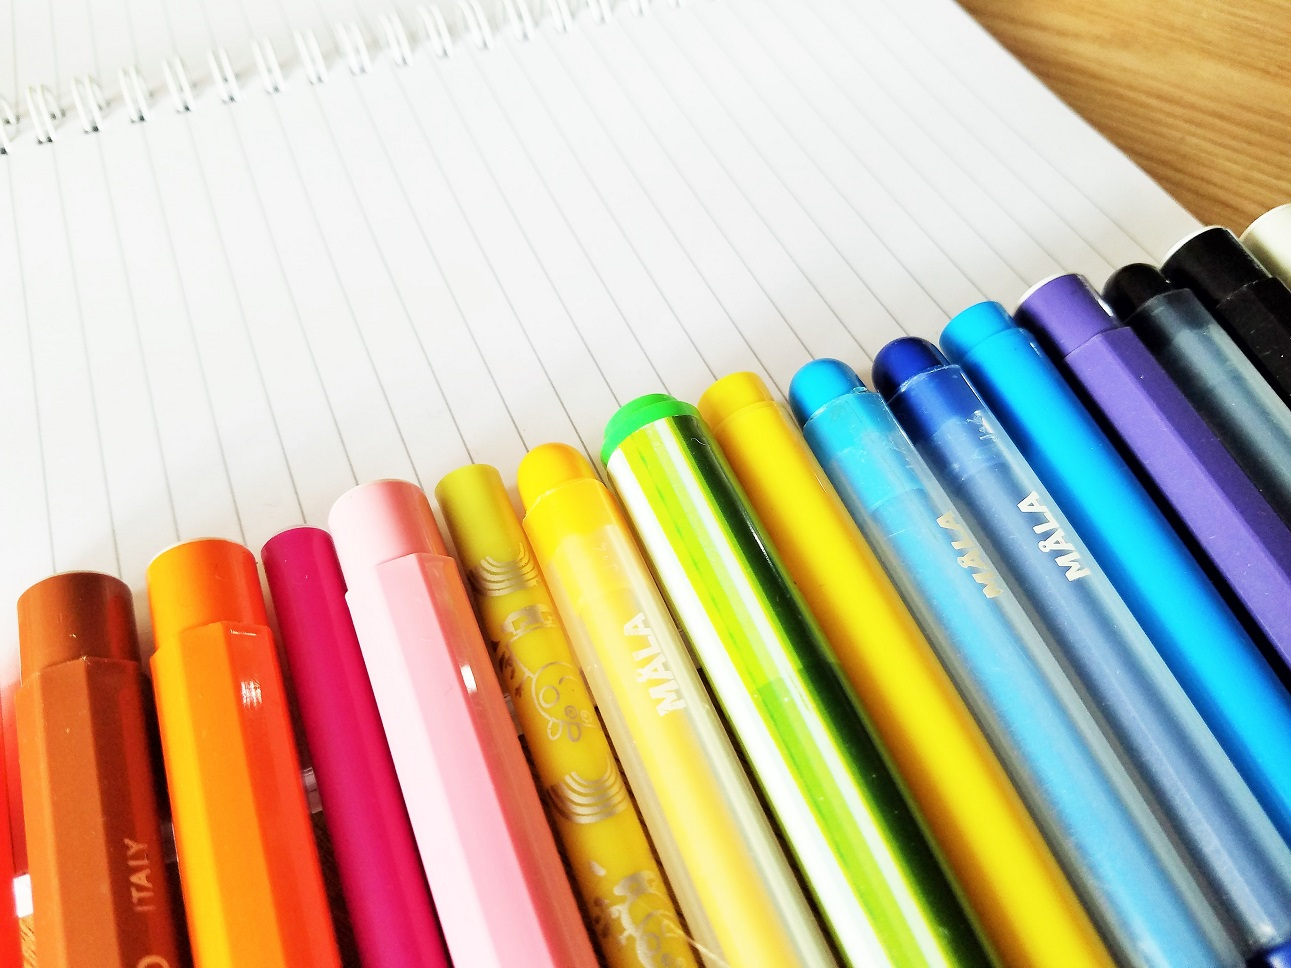 Spelling test - coloured felt tip pens on a lined notebook